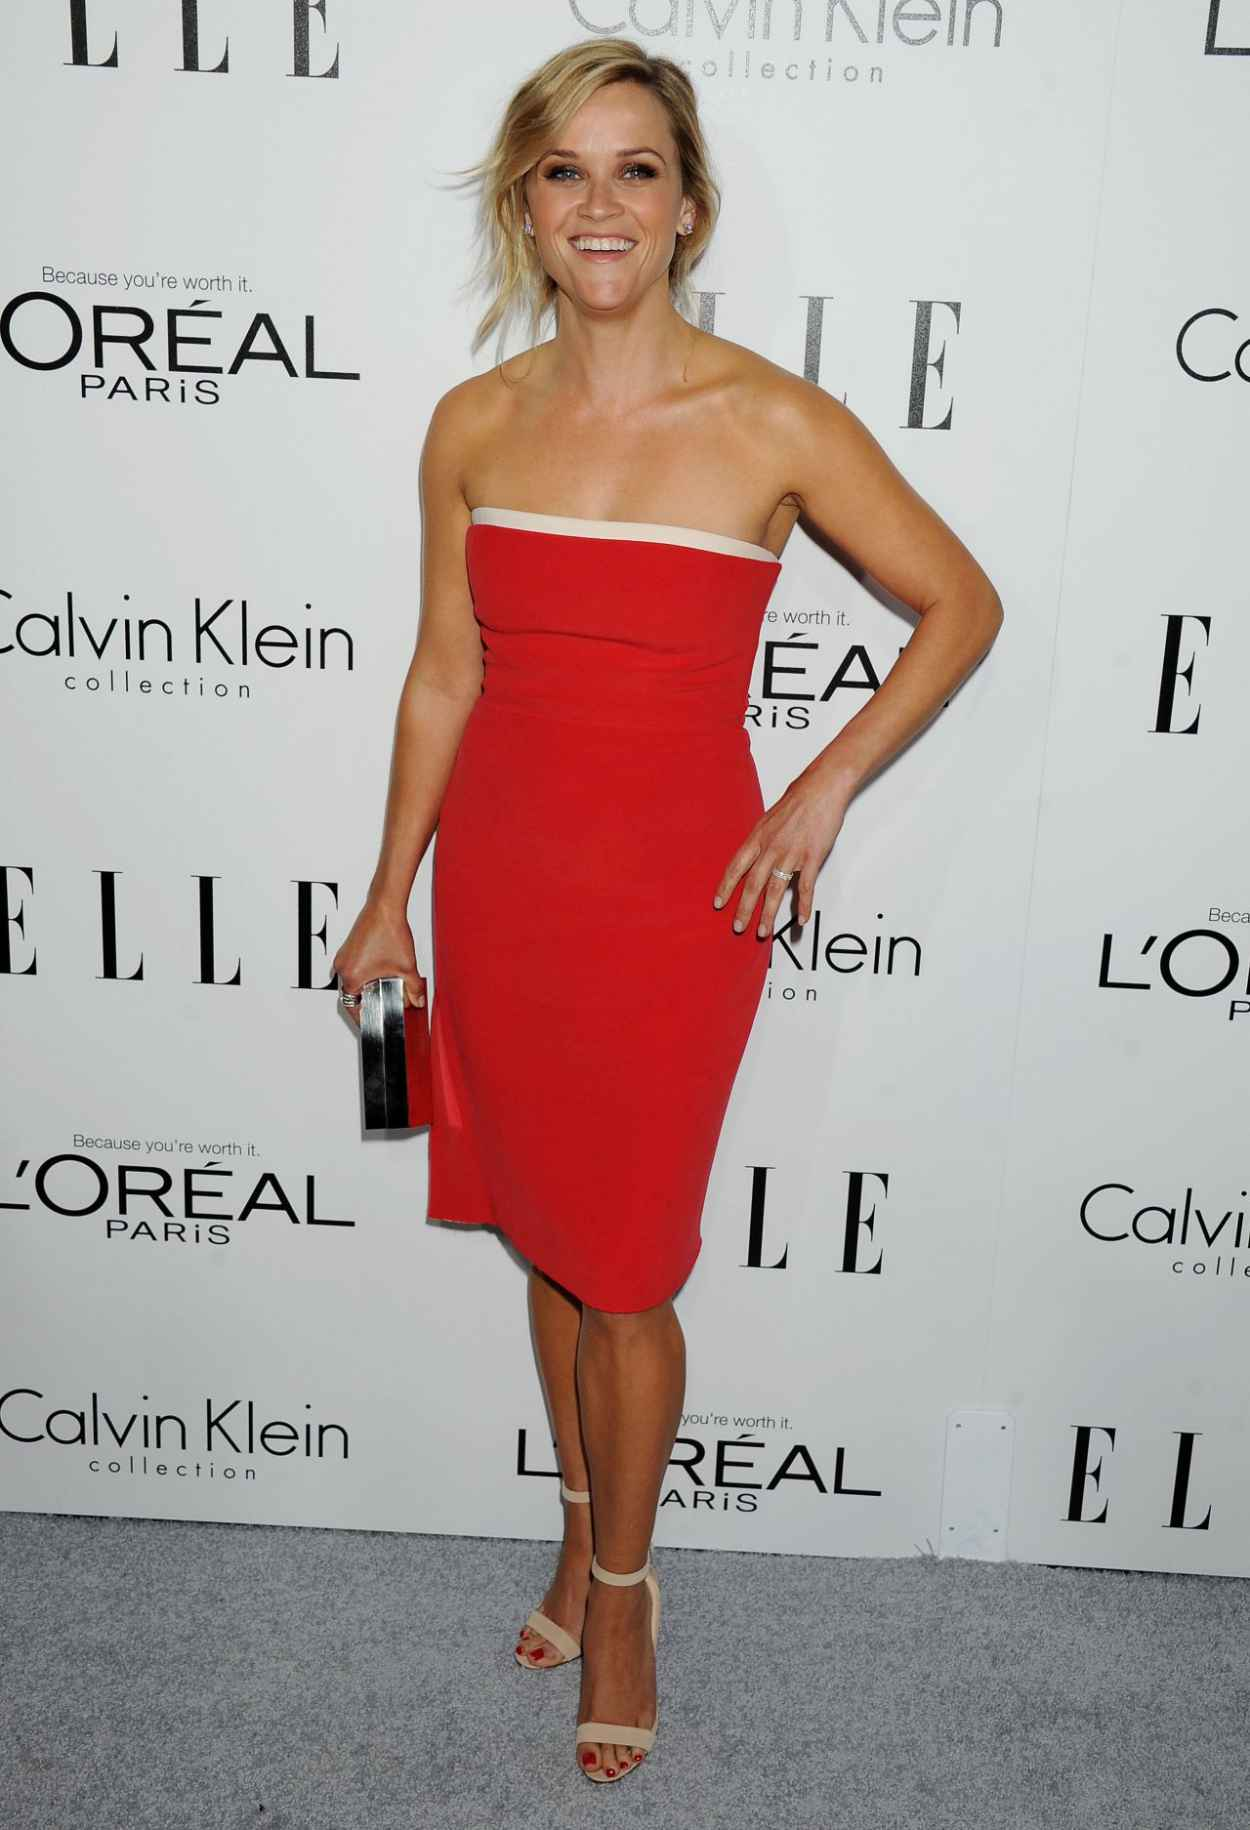 Reese Witherspoon - ELLE-s 20th Annual Women in Hollywood Awards Red Carpet-1